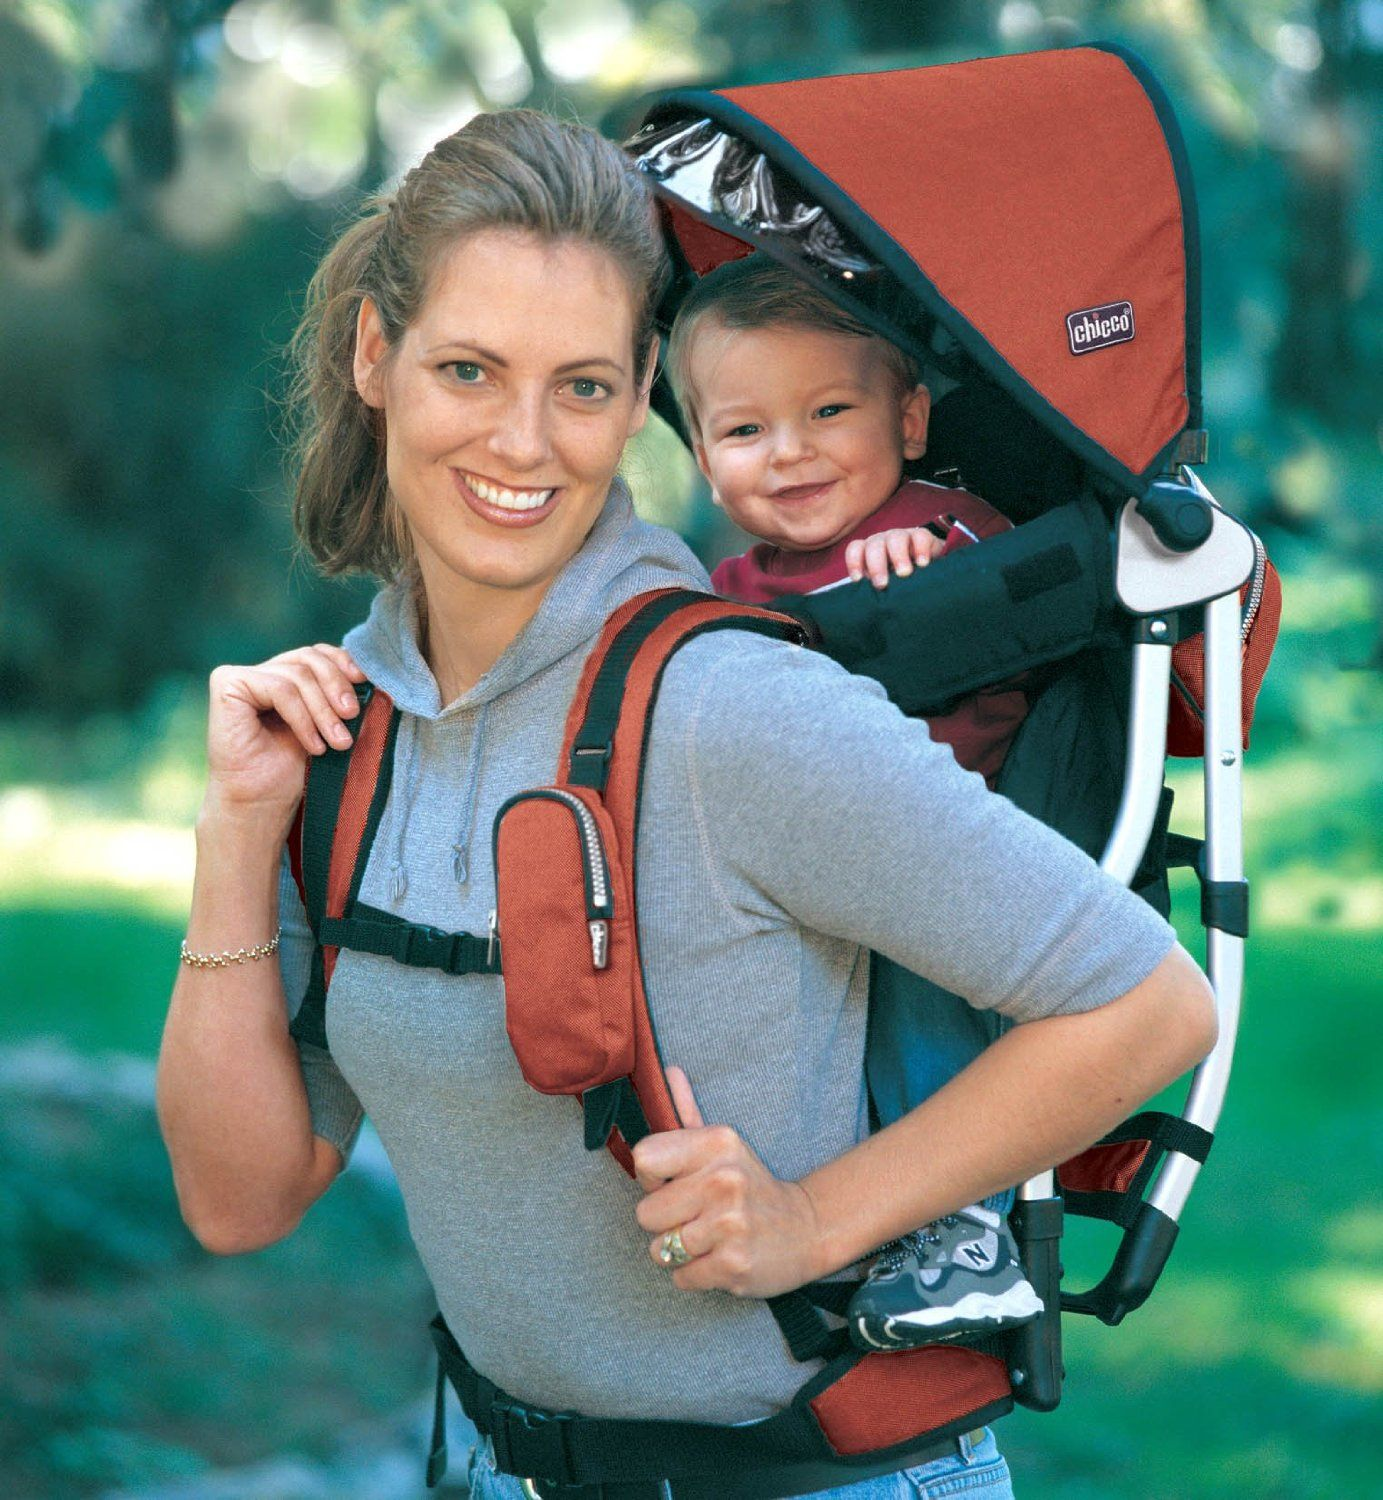 Le Meilleur Never Run Or Jog While Carrying A Baby In Any Backpack Ce Mois Ci